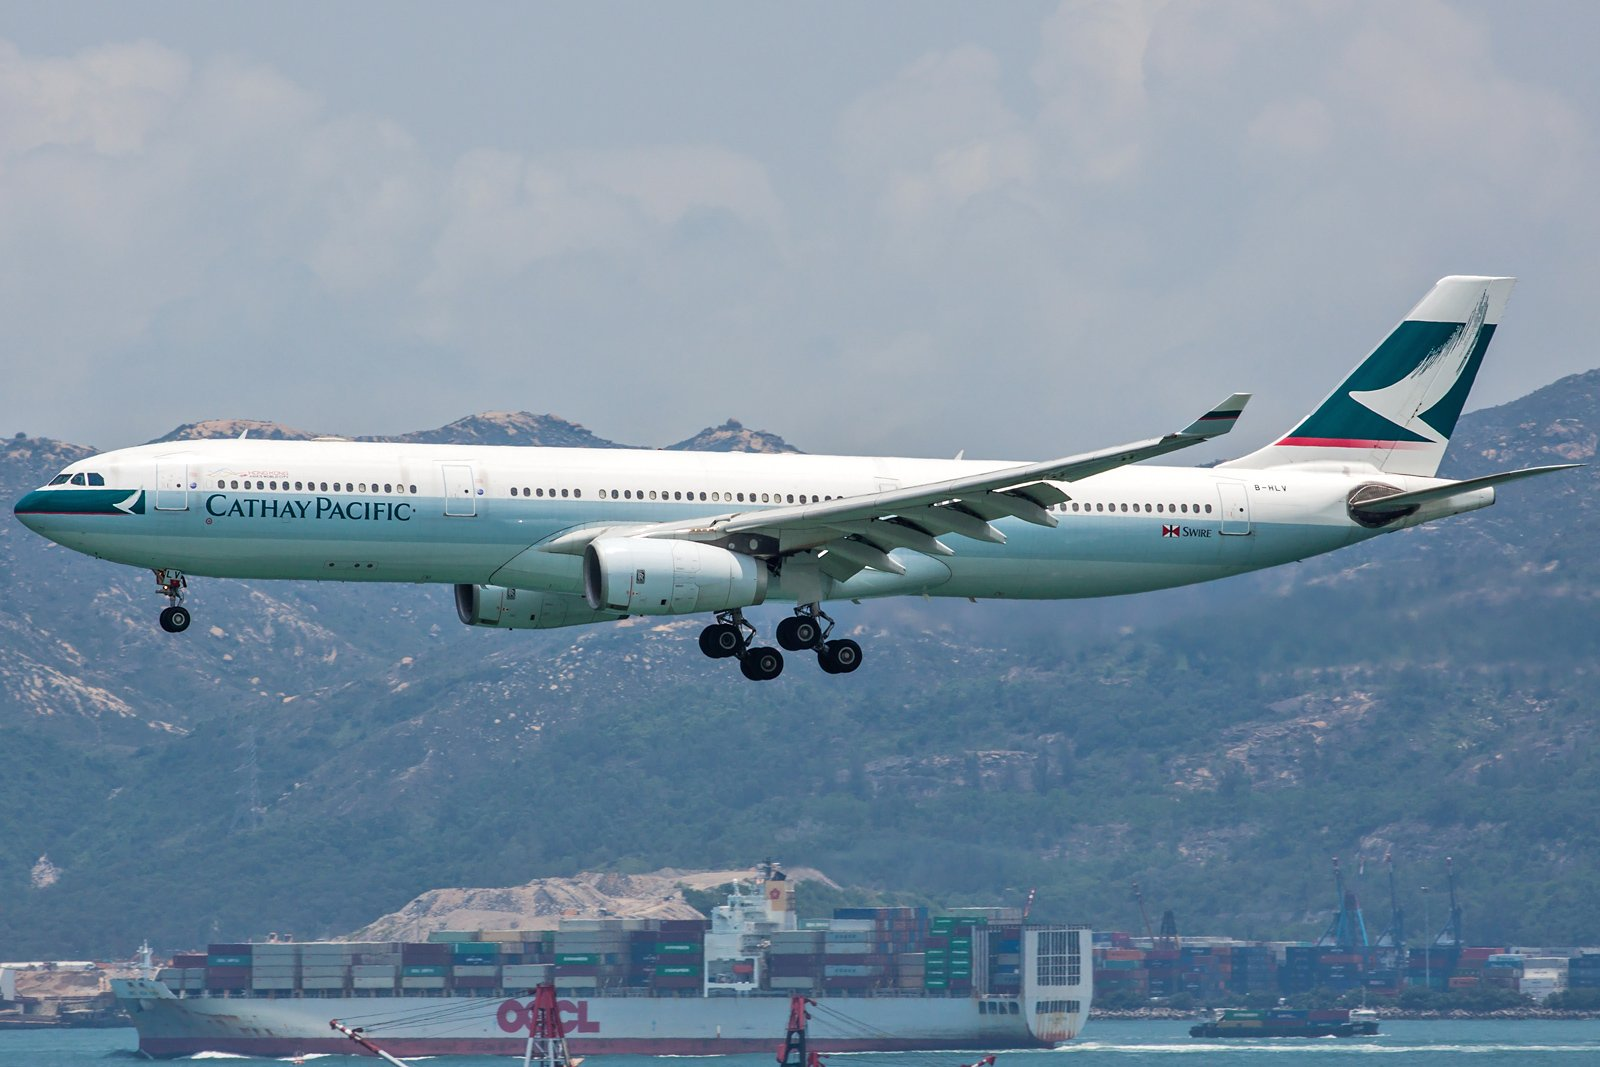 Cathay Pacific Airbus A330-343 B-HLV